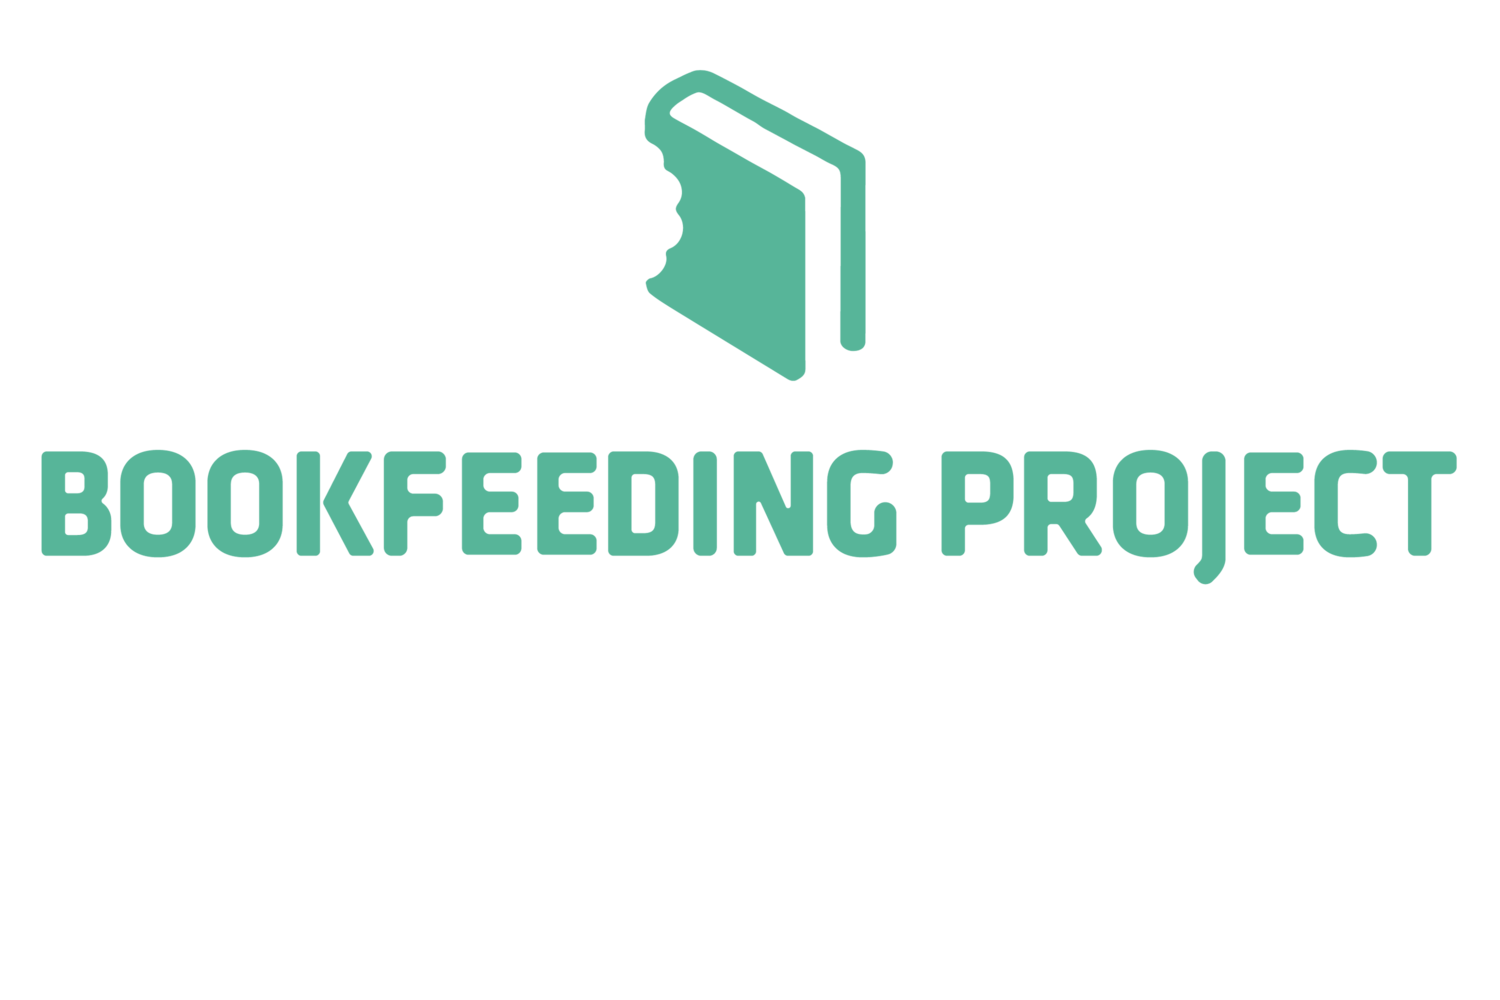 Bookfeeding Project